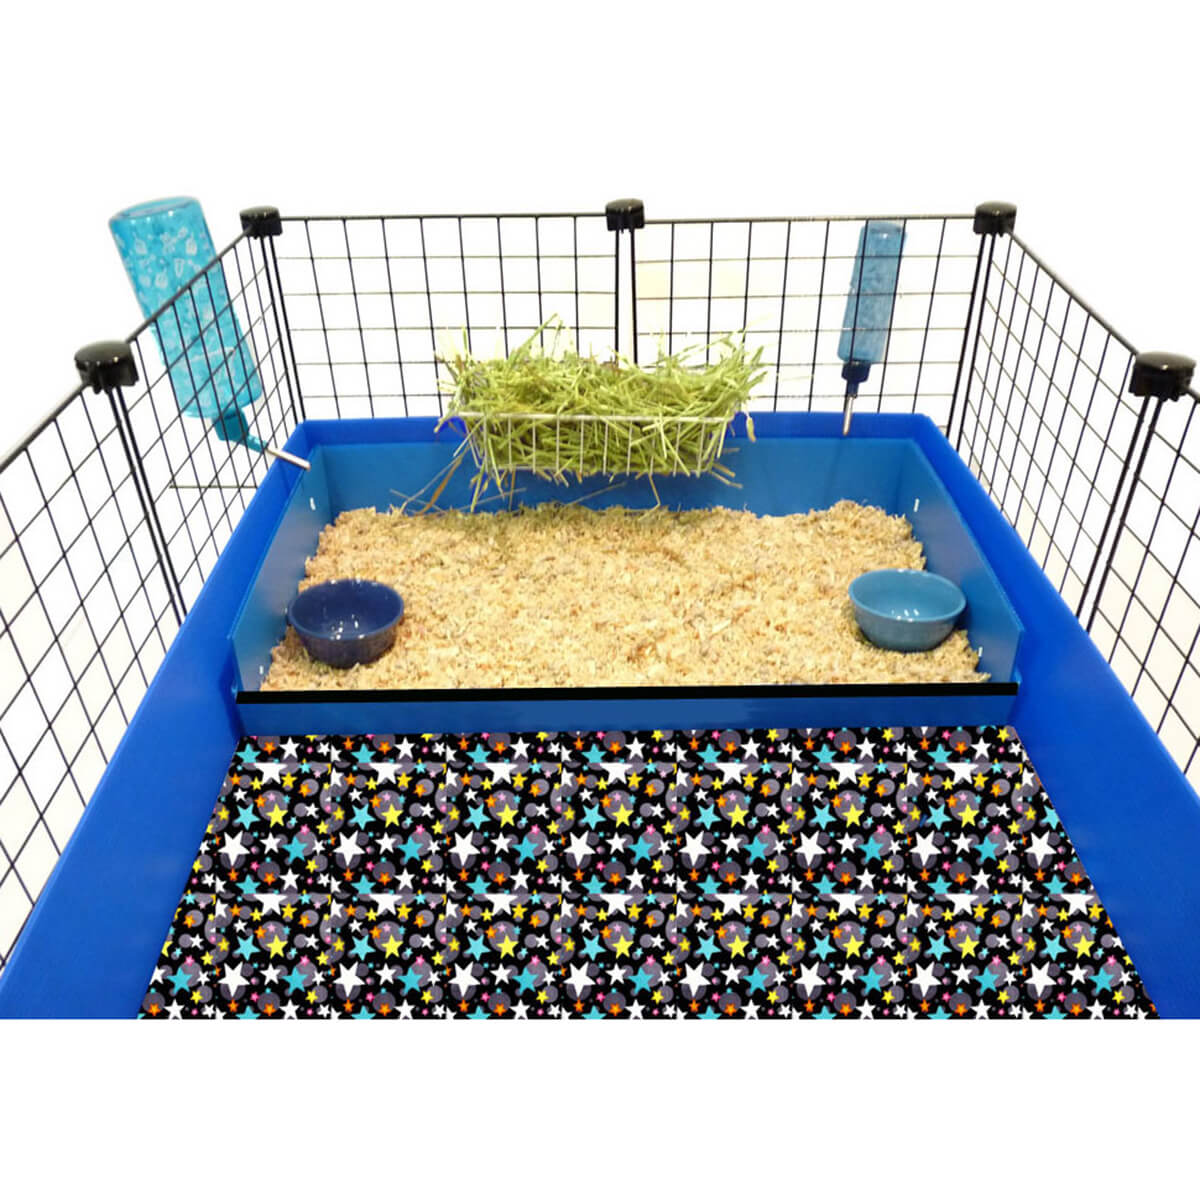 Cavy Cafe Kitchen insert for C&C Guinea Pig Cage